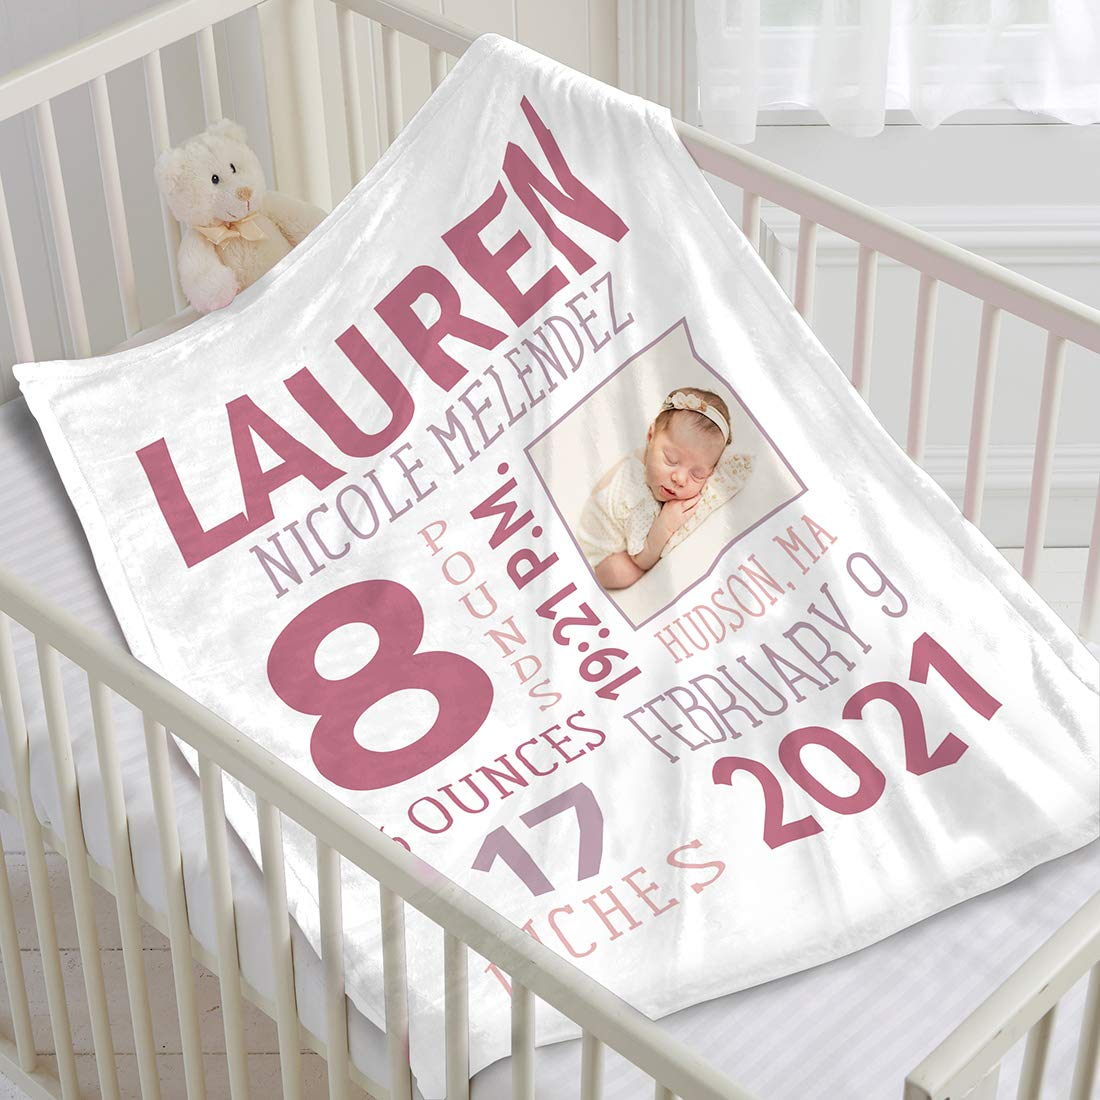 Personalized Baby Photo Newborn New discount life Blanket Birth Information f with